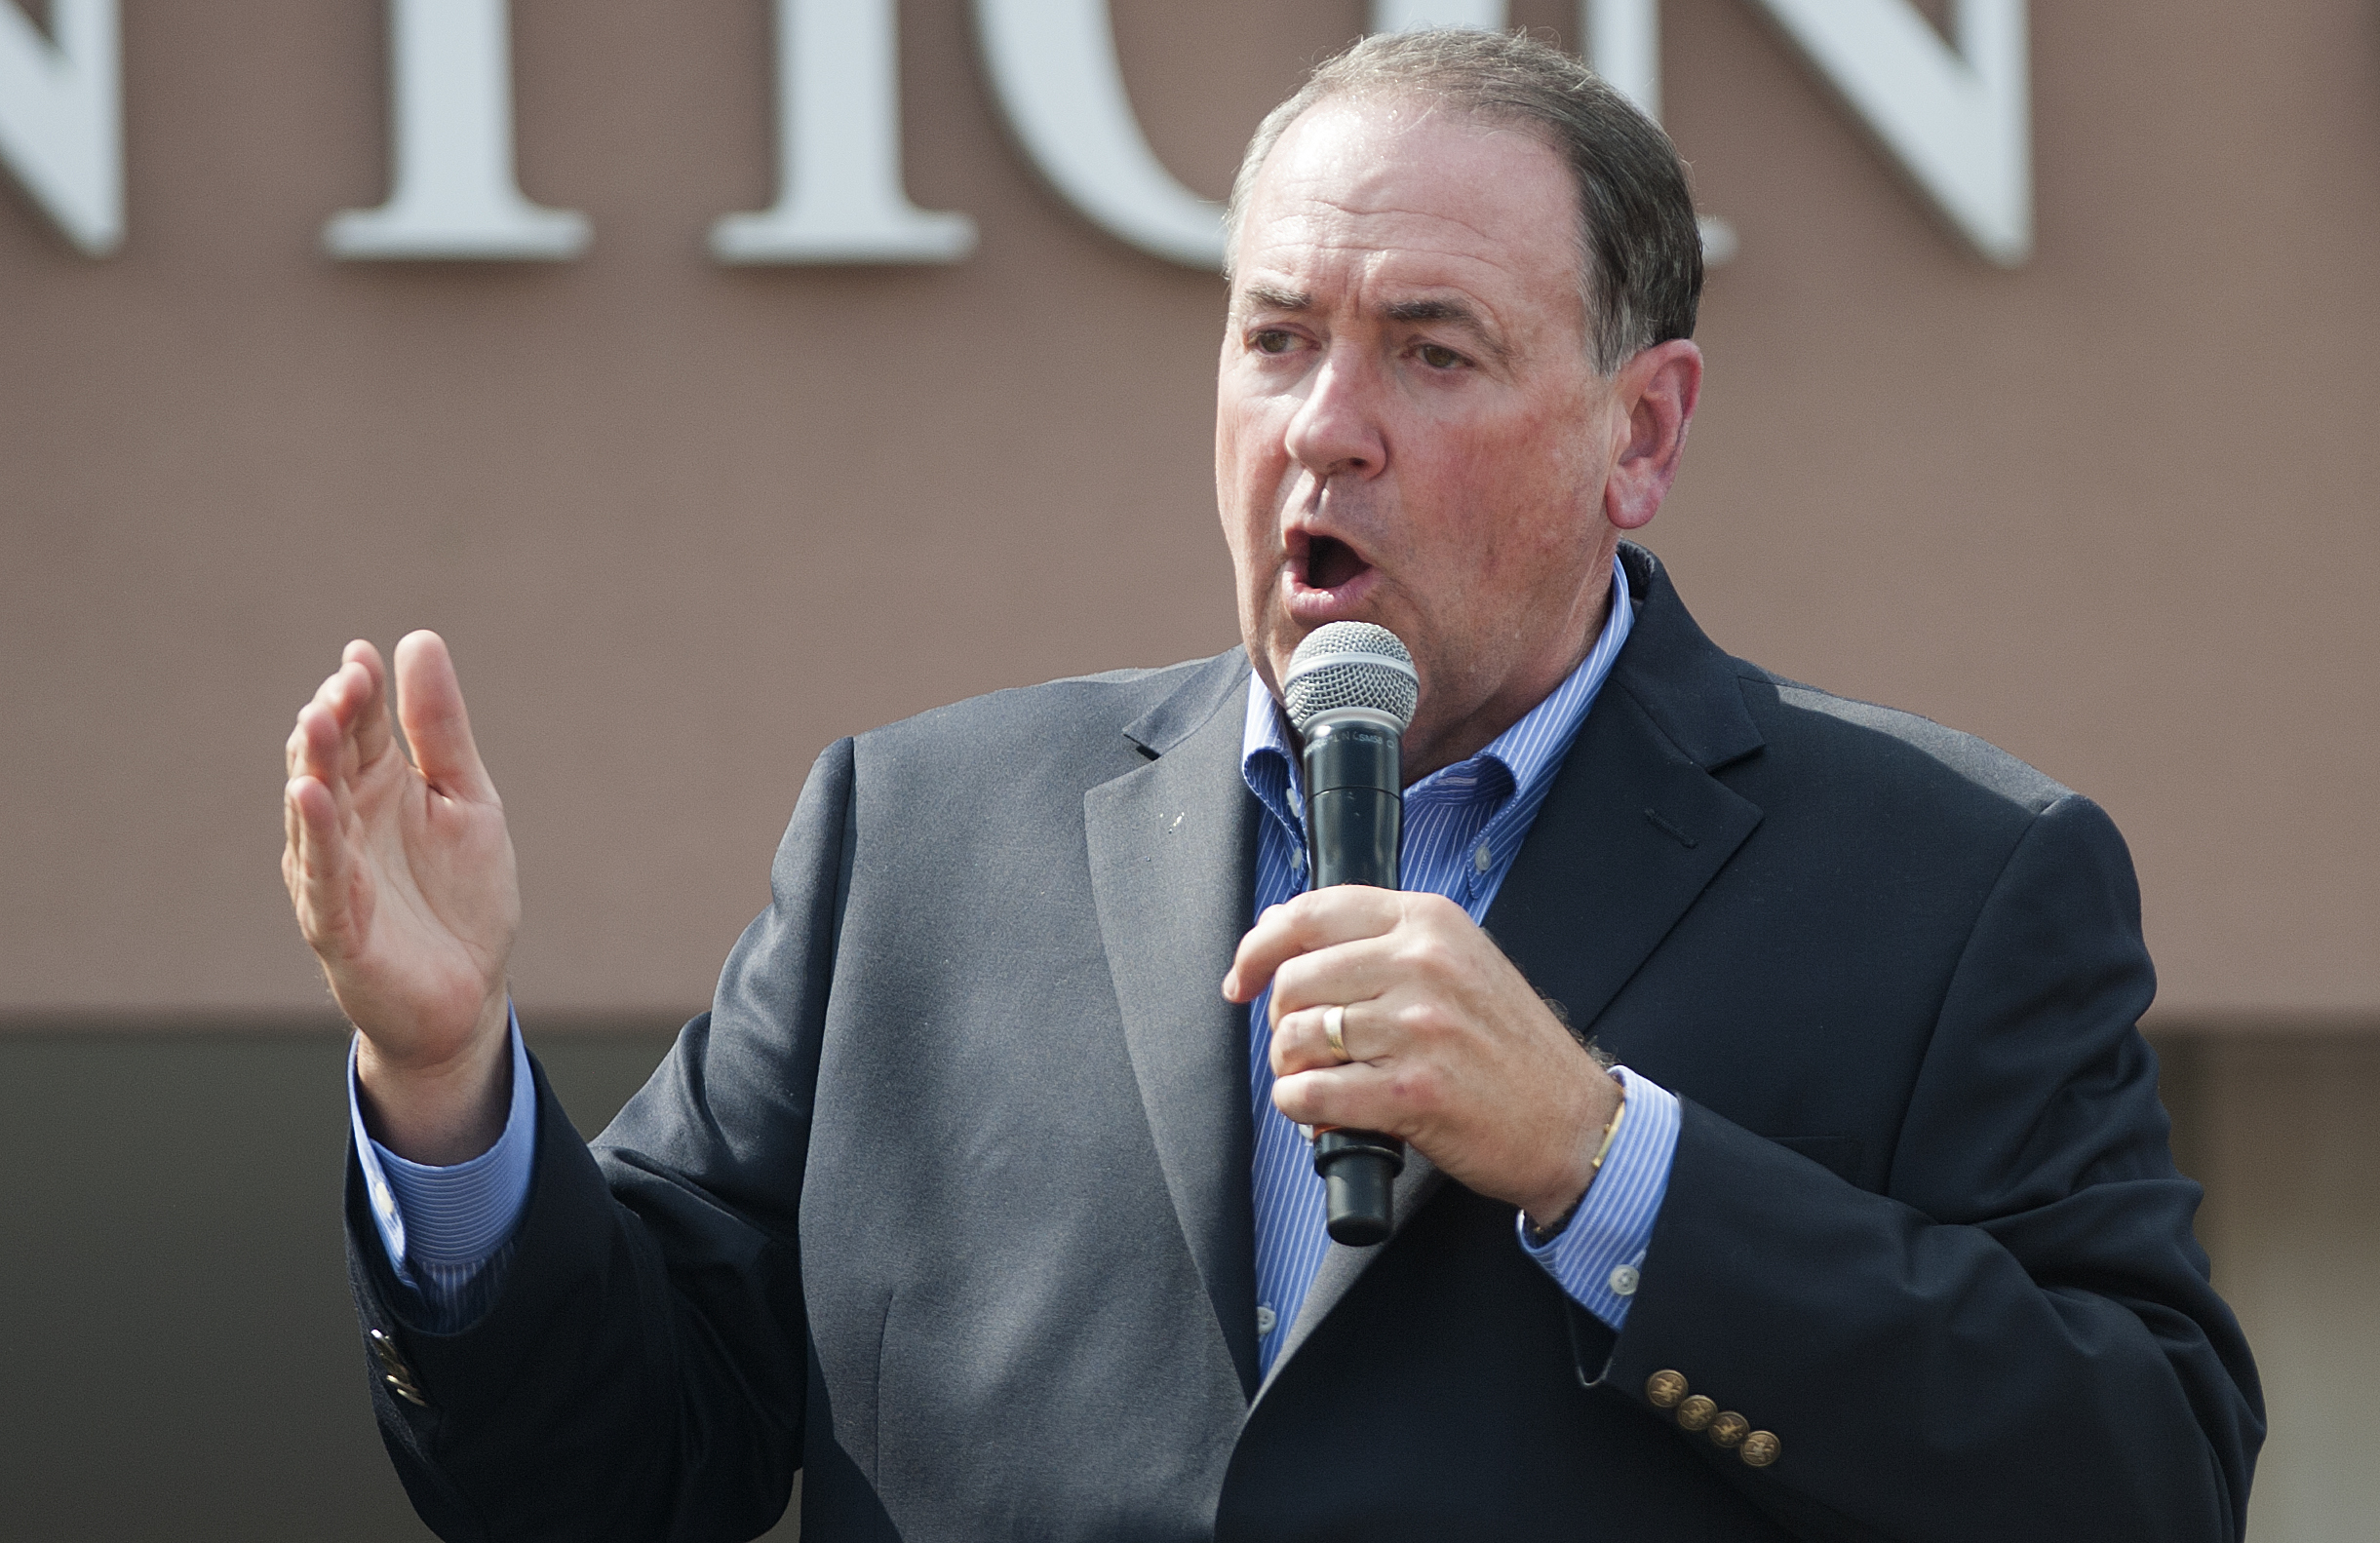 Republican presidential candidate Mike Huckabee speaks to supporters during a rally for County Clerk Kim Davis in front of the Carter County Detention Center n Grayson, Kentucky, on Sept. 8, 2015.